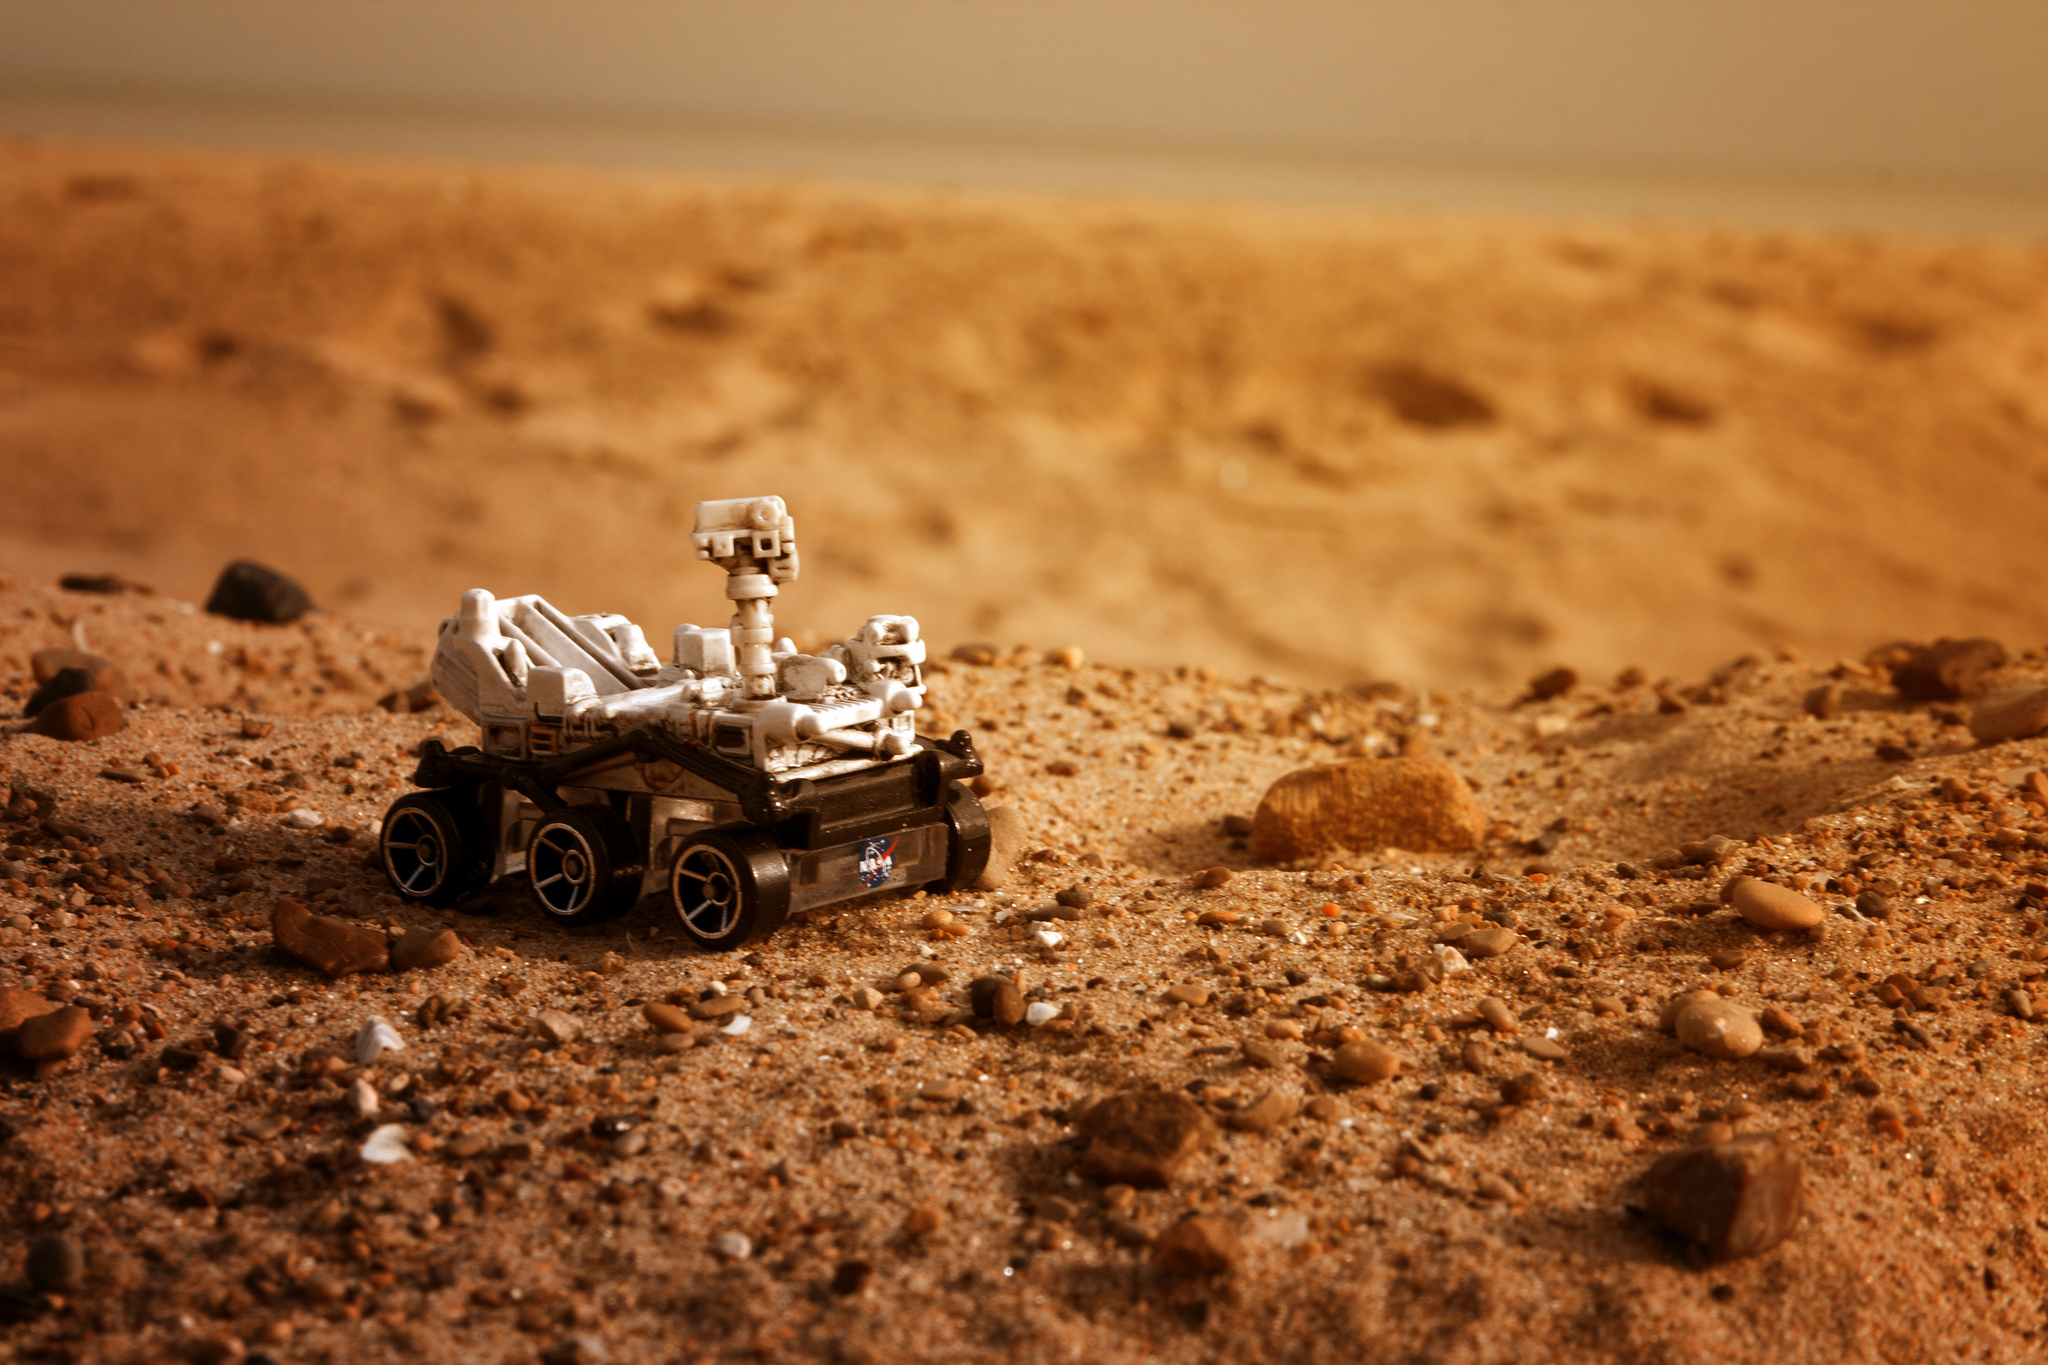 mars rover images - HD 2048×1365